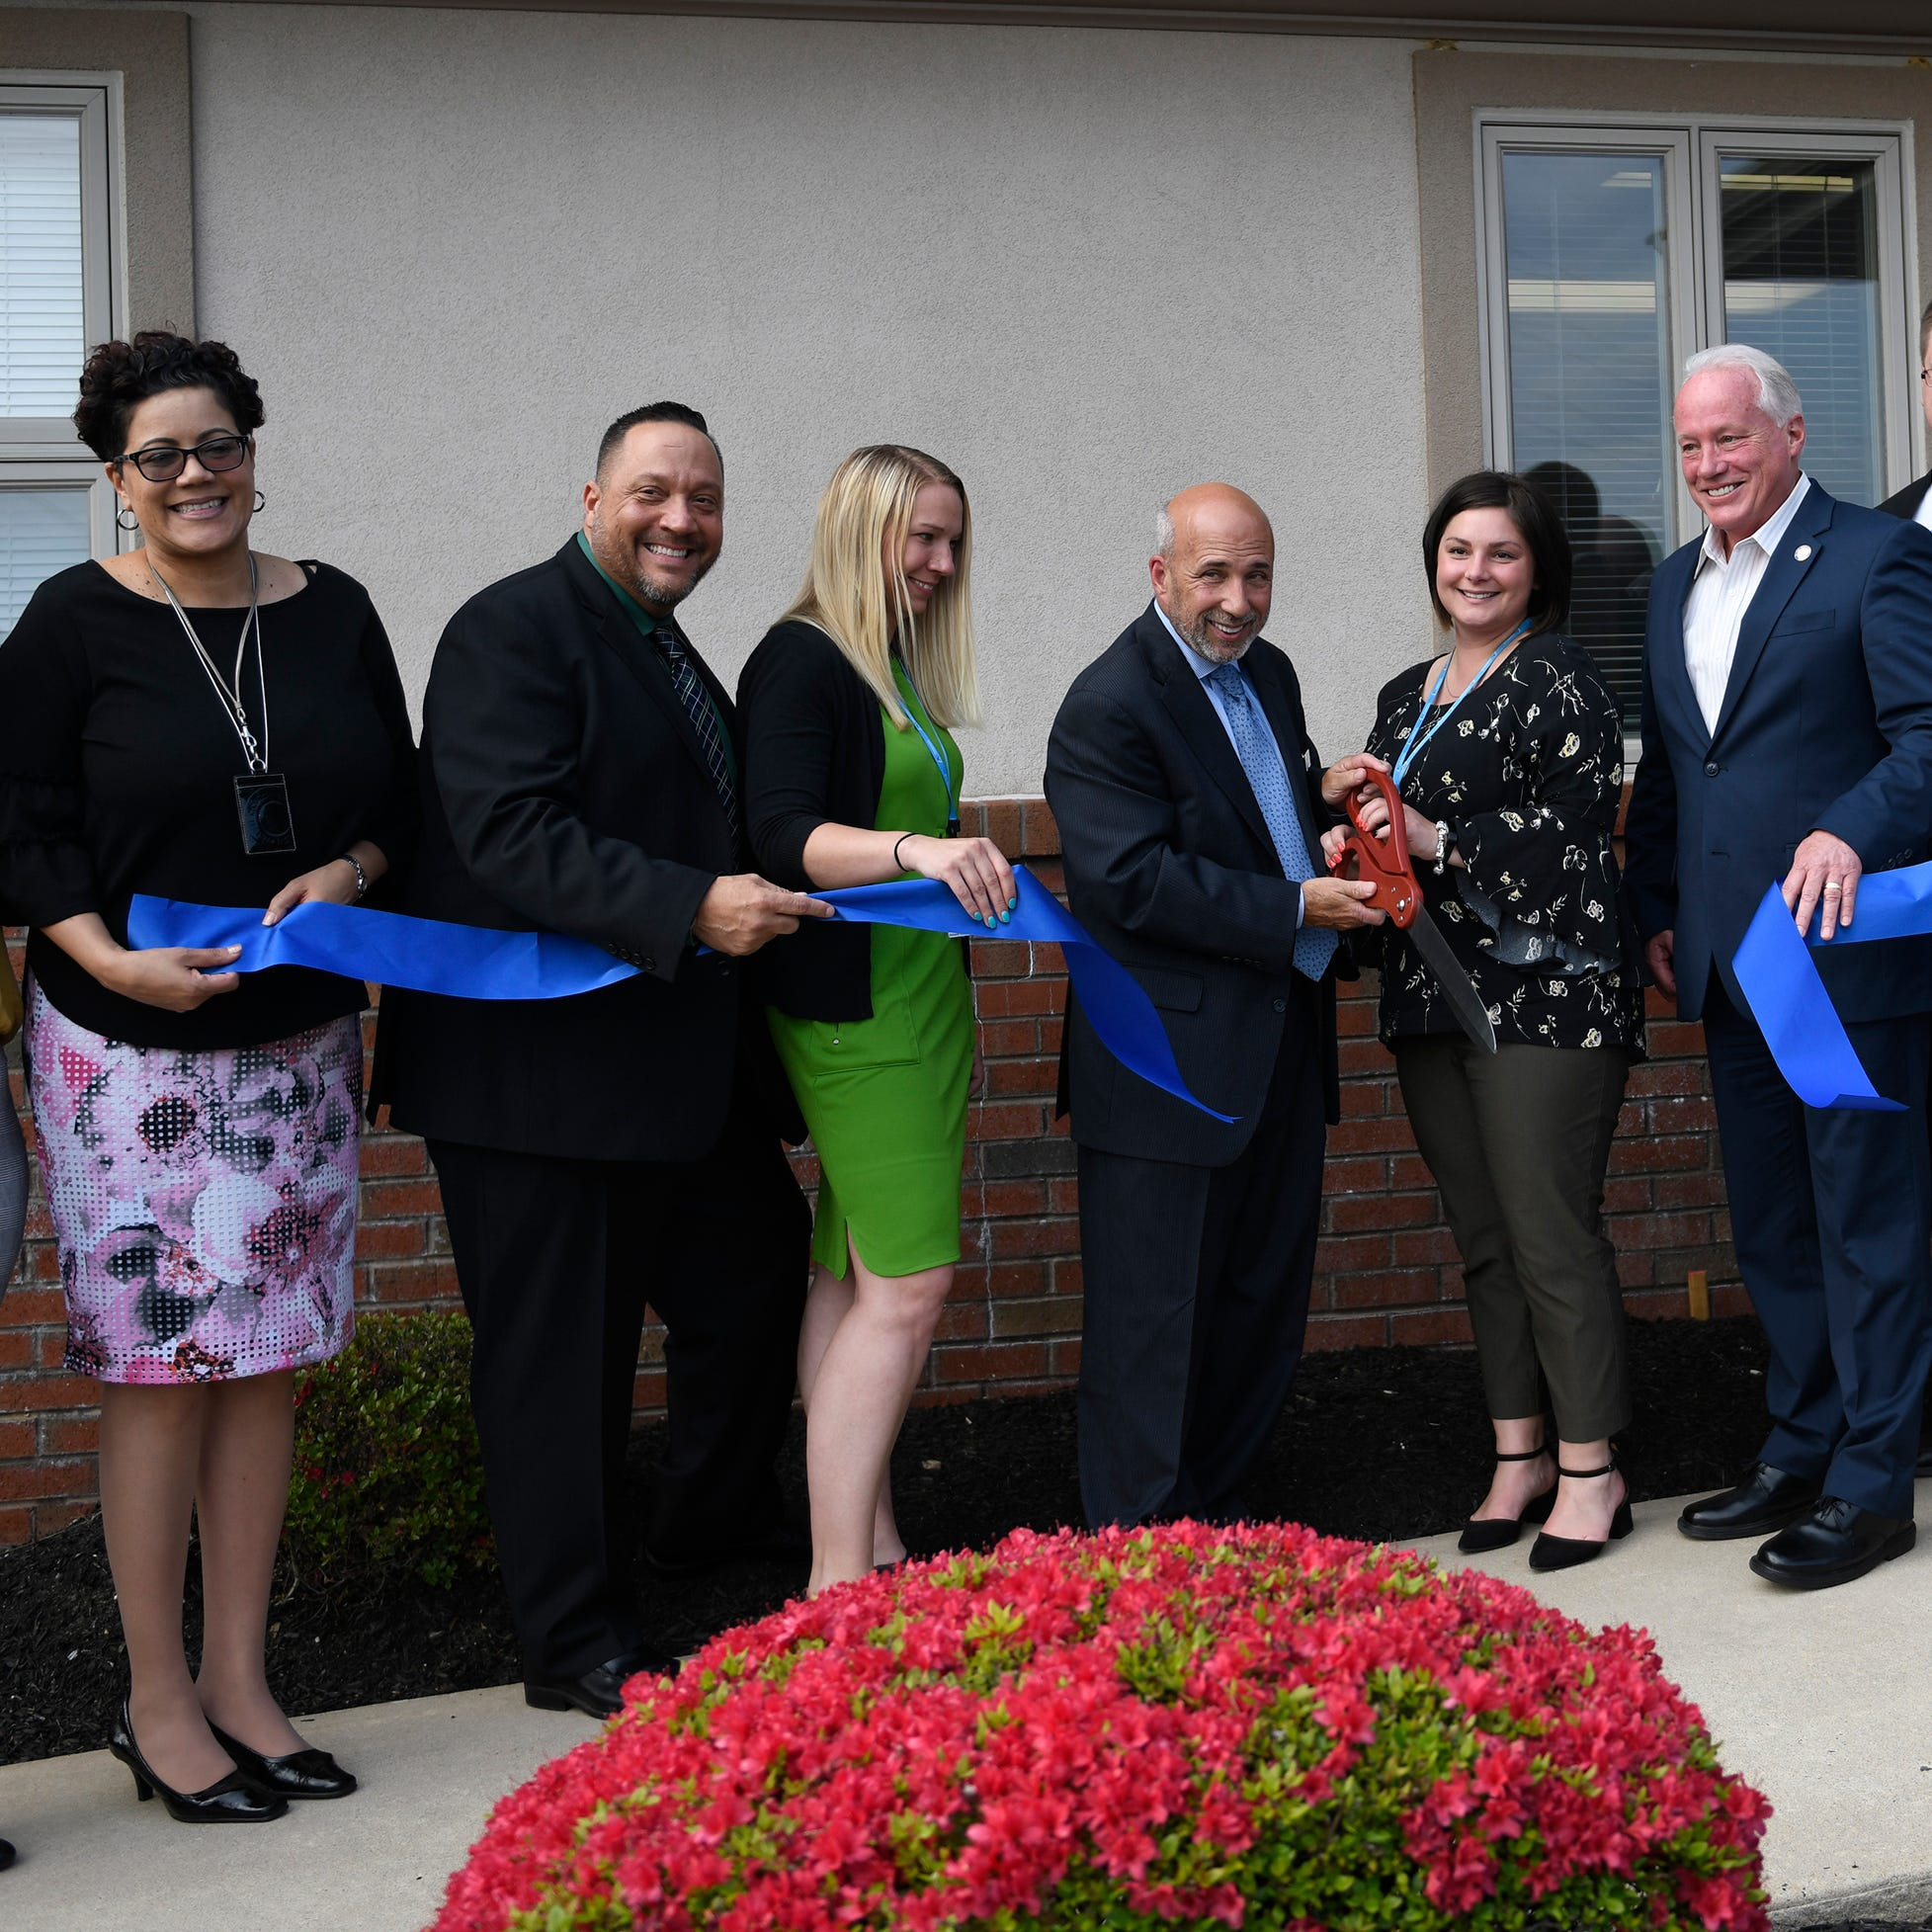 Outpatient opioid treatment center now open in Vineland